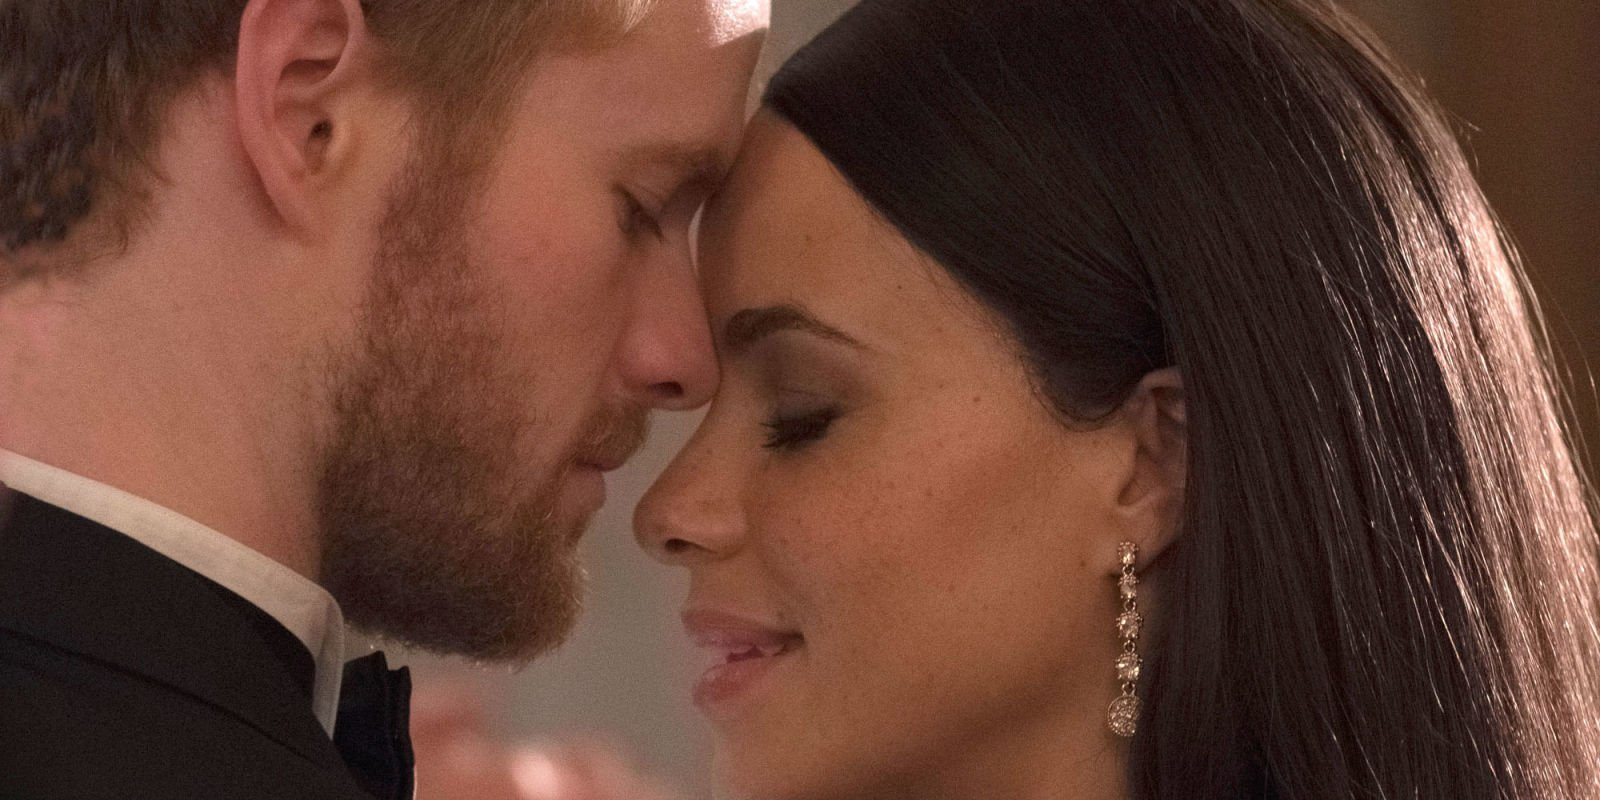 Lifetime's Prince Harry and Meghan Markle TV movie drops its first trailer